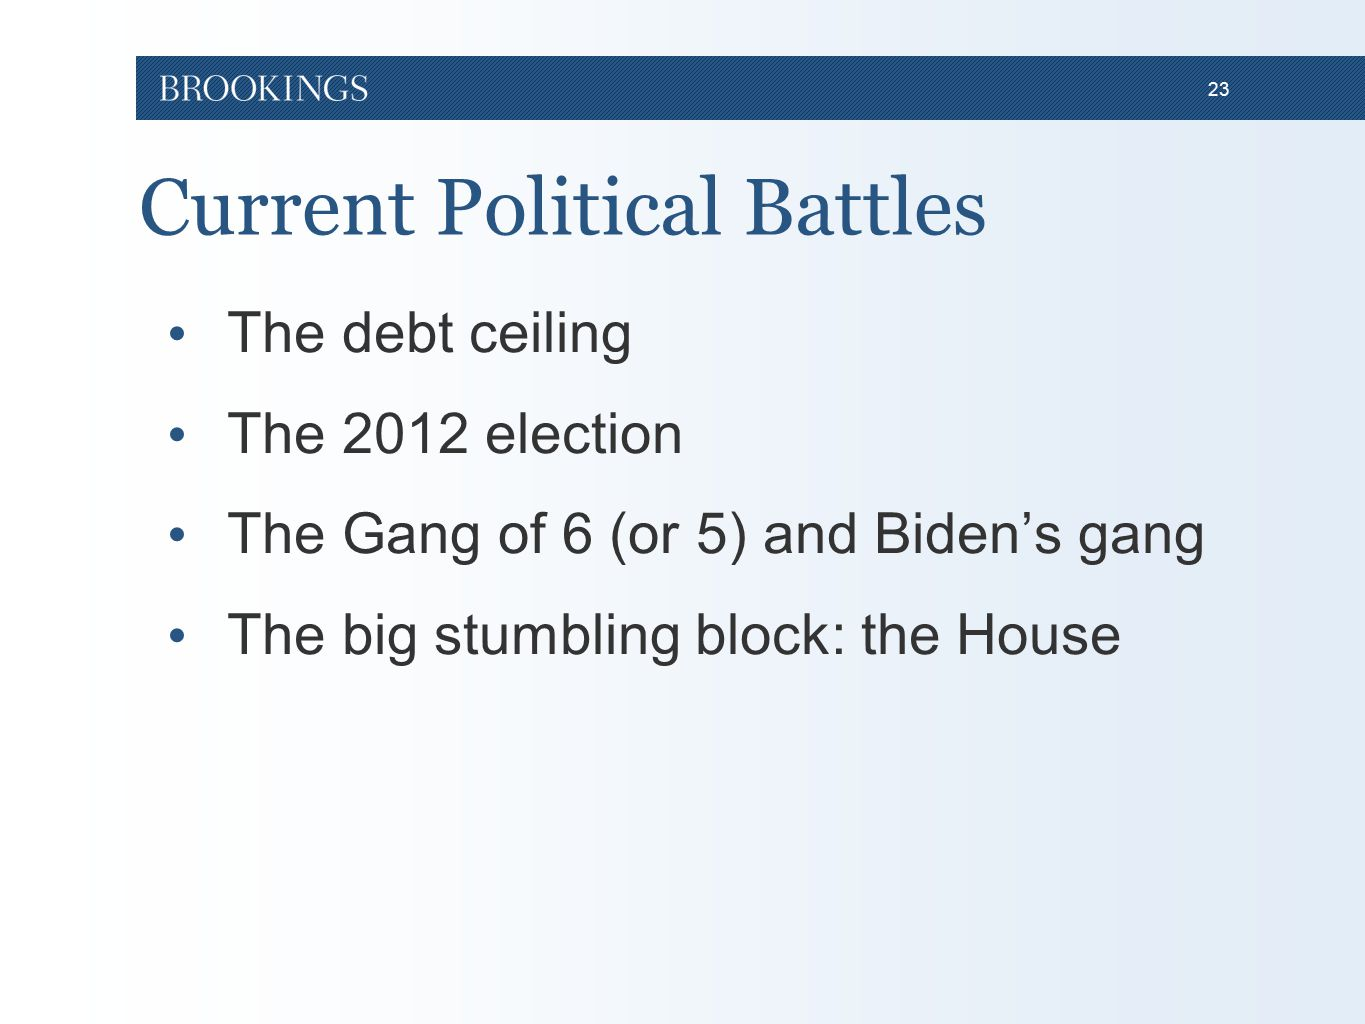 23 Current Political Battles The debt ceiling The 2012 election The Gang of 6 (or 5) and Biden's gang The big stumbling block: the House